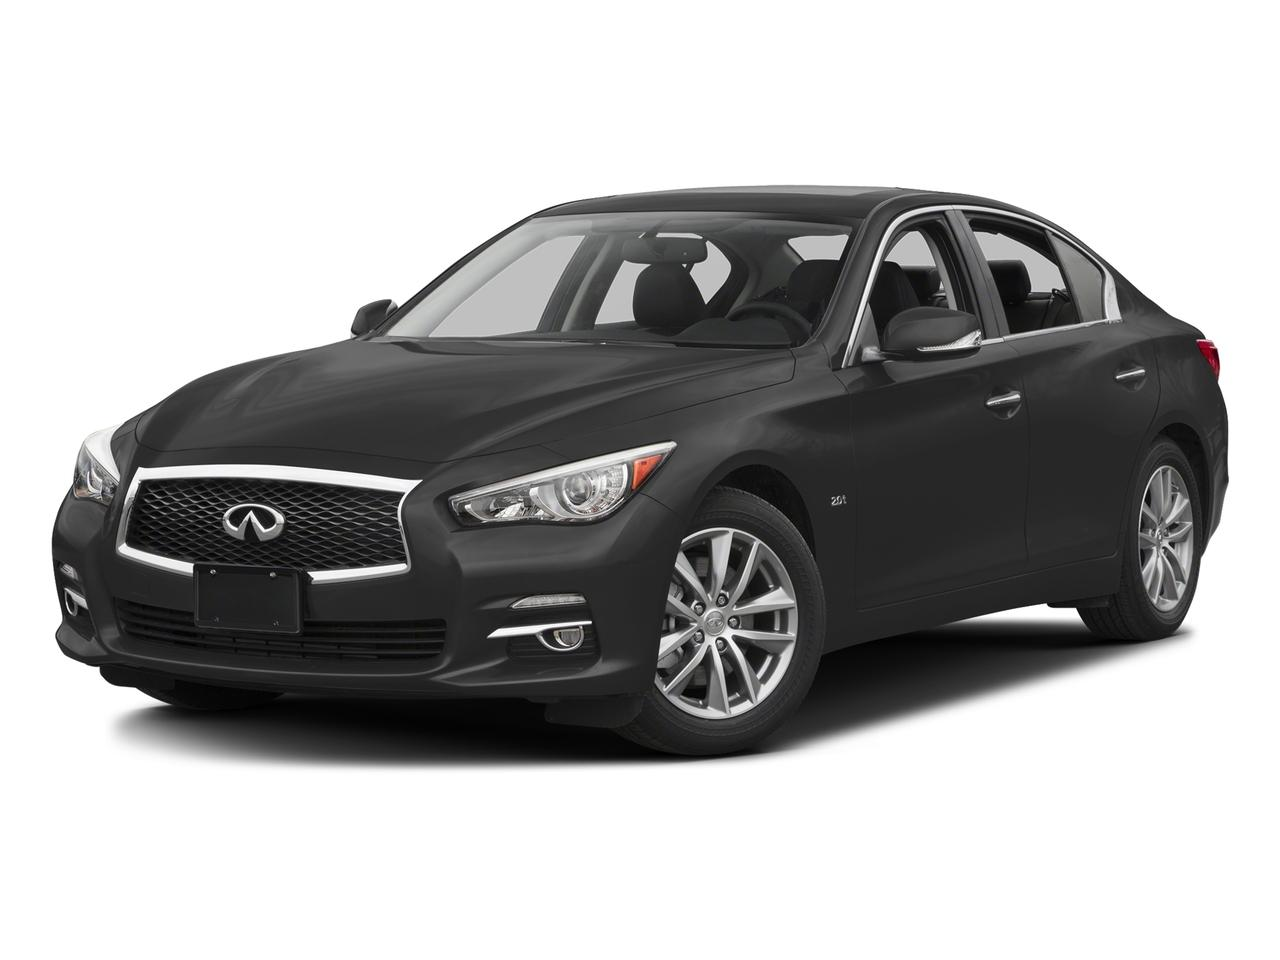 2016 INFINITI Q50 Vehicle Photo in Charlotte, NC 28269